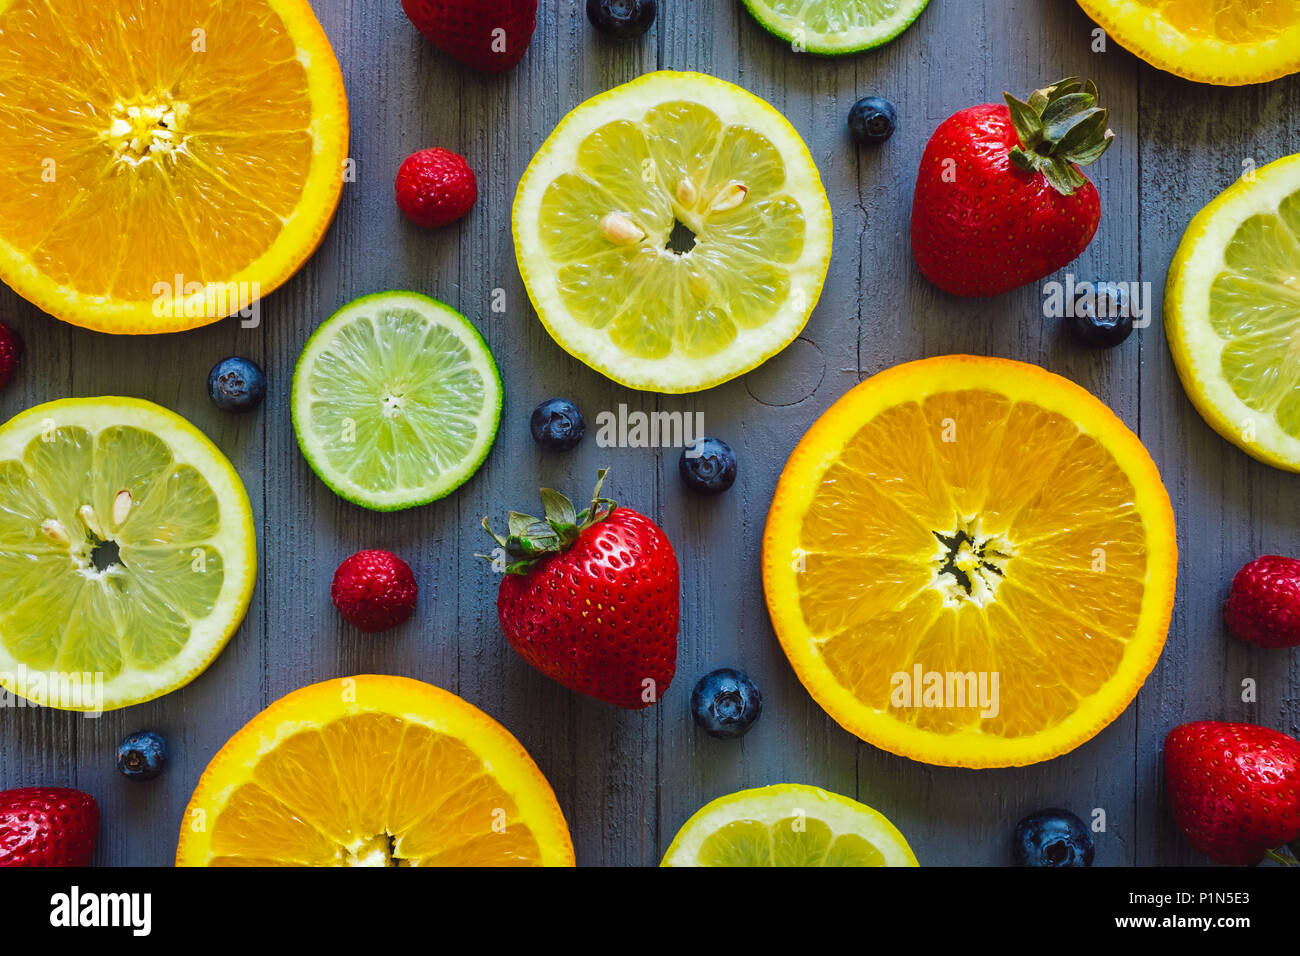 Mixed Sliced Oranges, Lemons and Limes with Blueberries and Strawberries on Blue Table - Stock Image